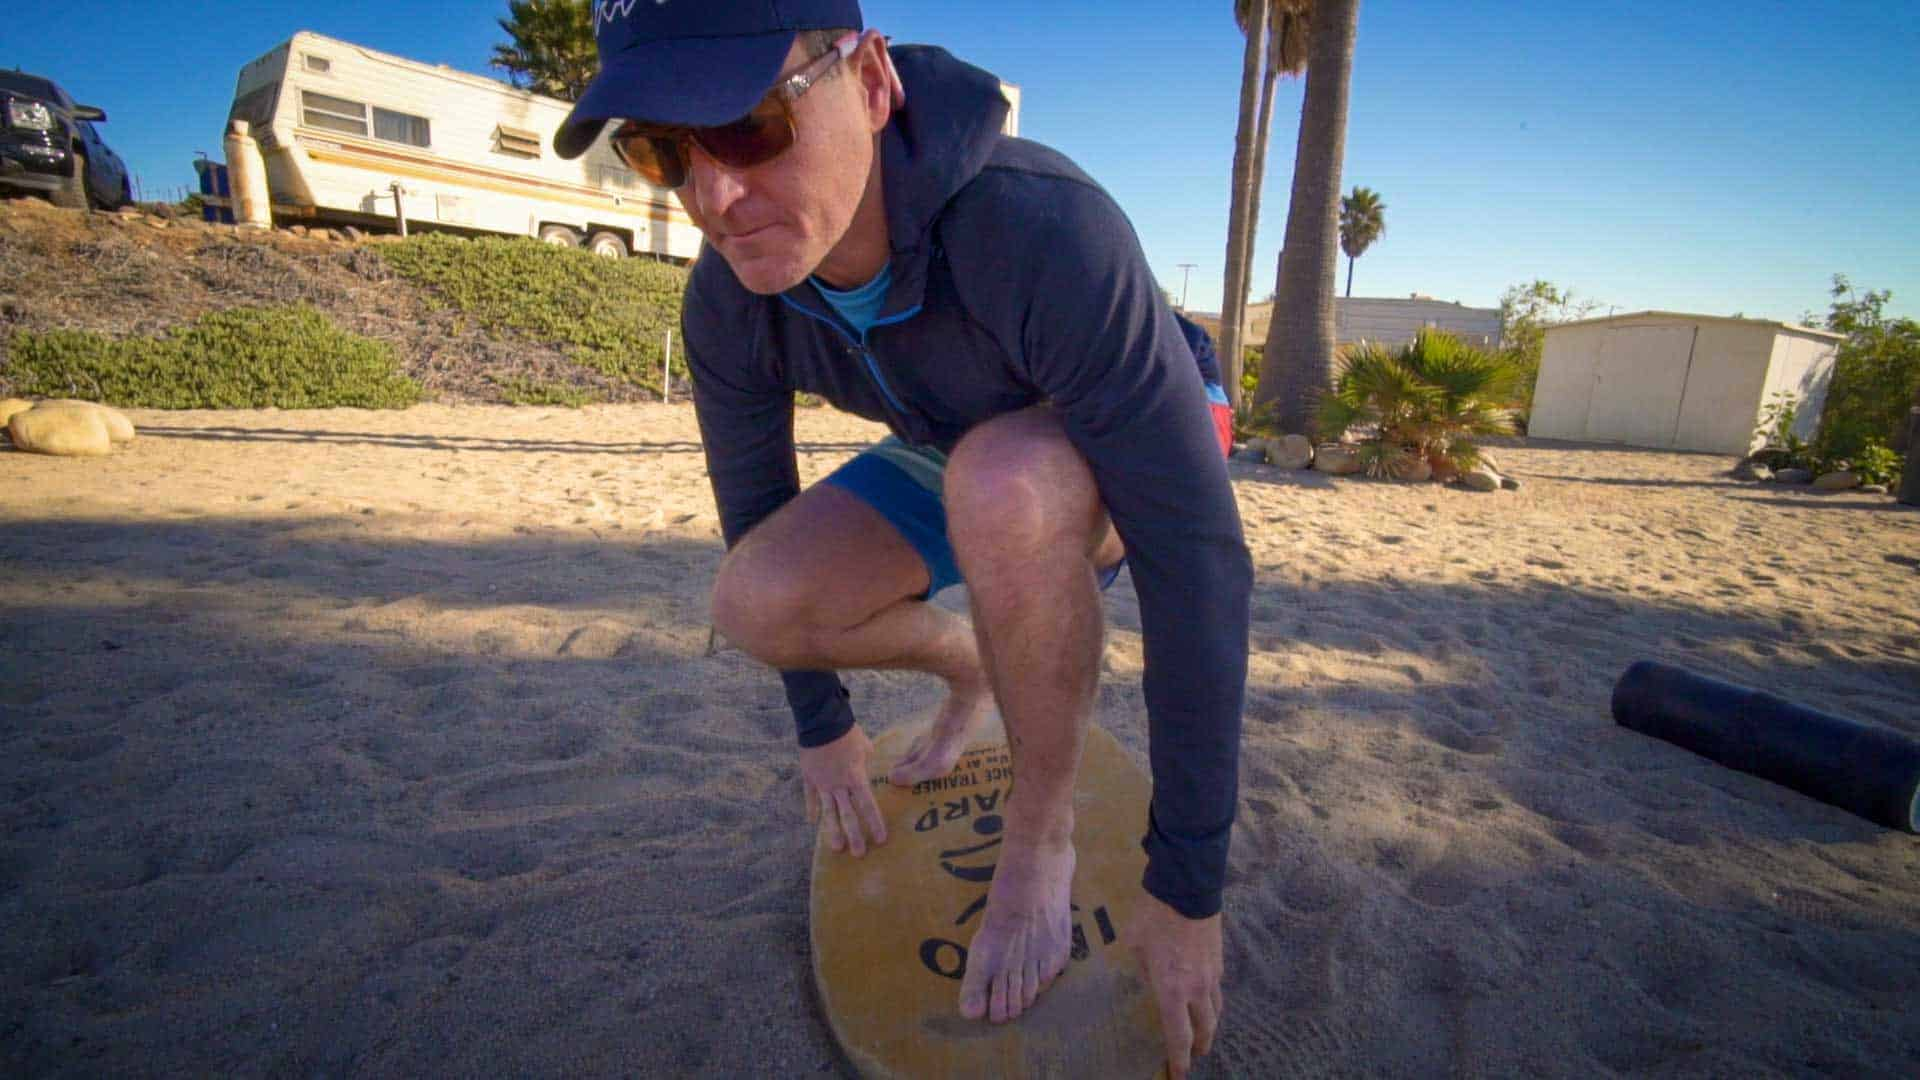 Adventure-in-a-backpack-baja-california-surf-tour-38